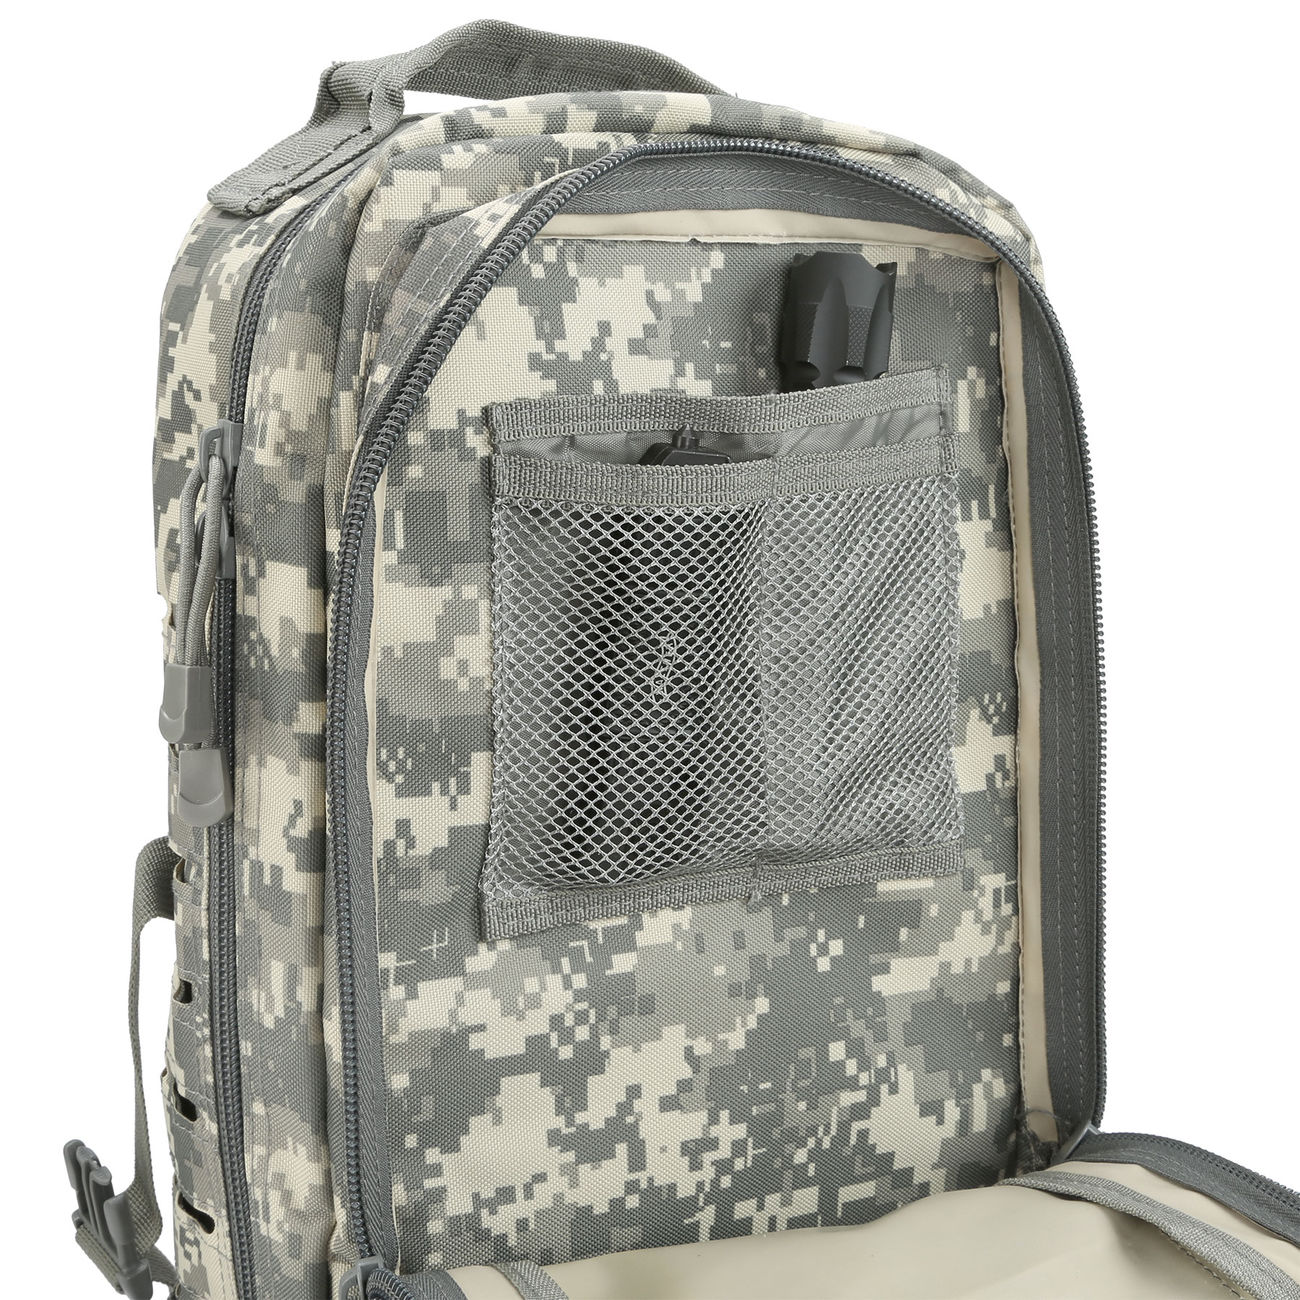 MFH Rucksack US Assault I Laser 30L AT-digital 8